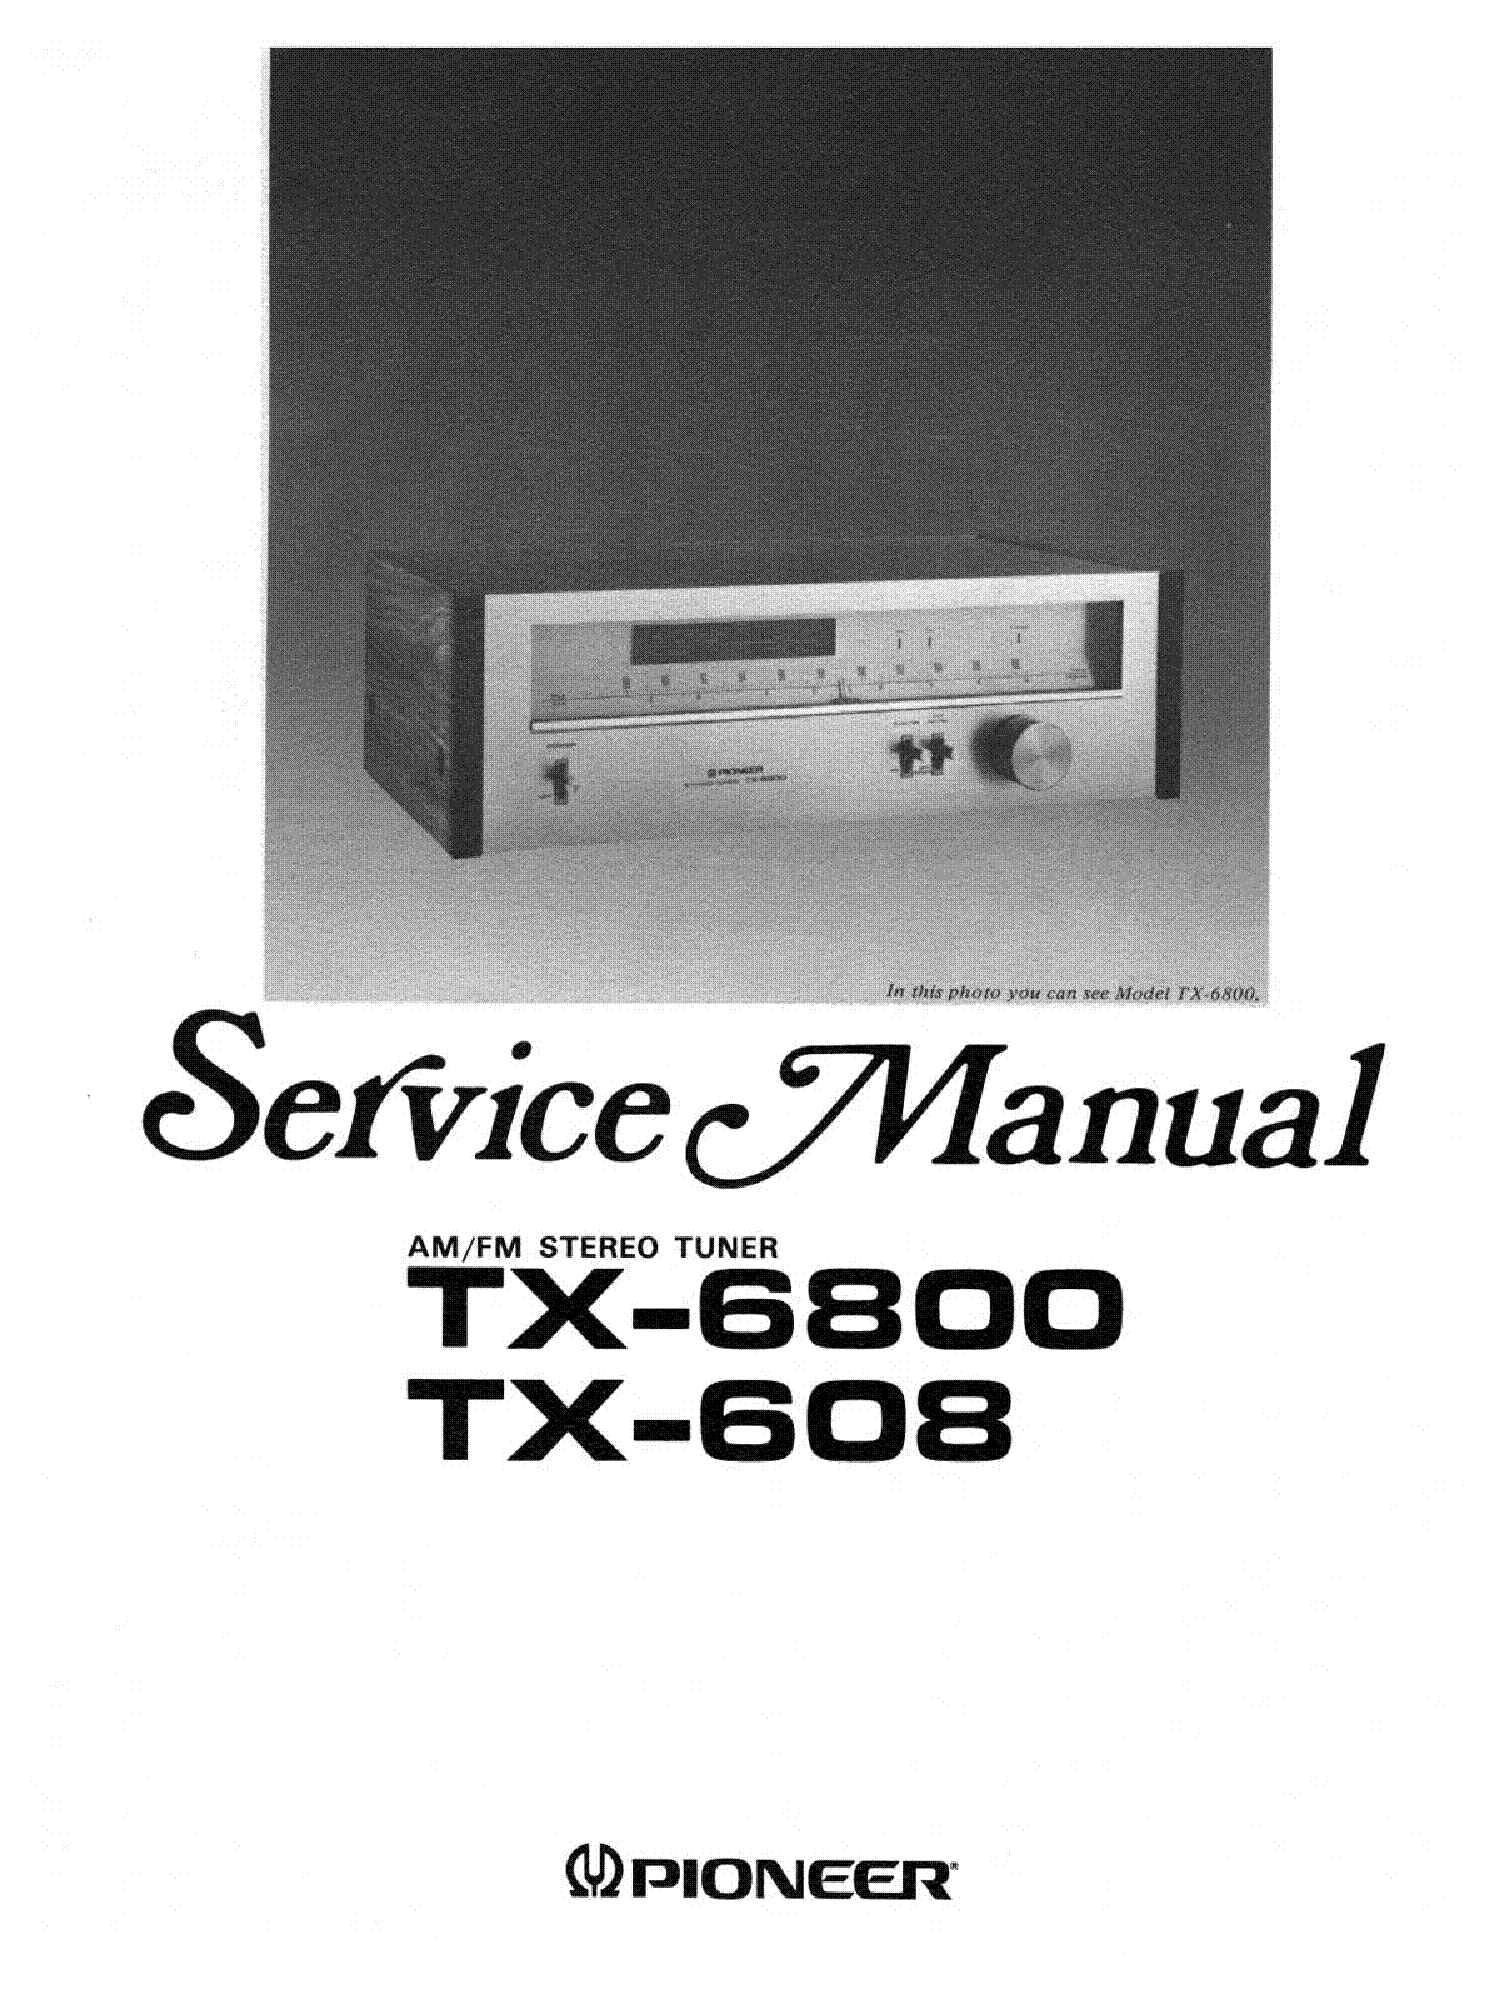 PIONEER TX-608-6800 service manual (2nd page)